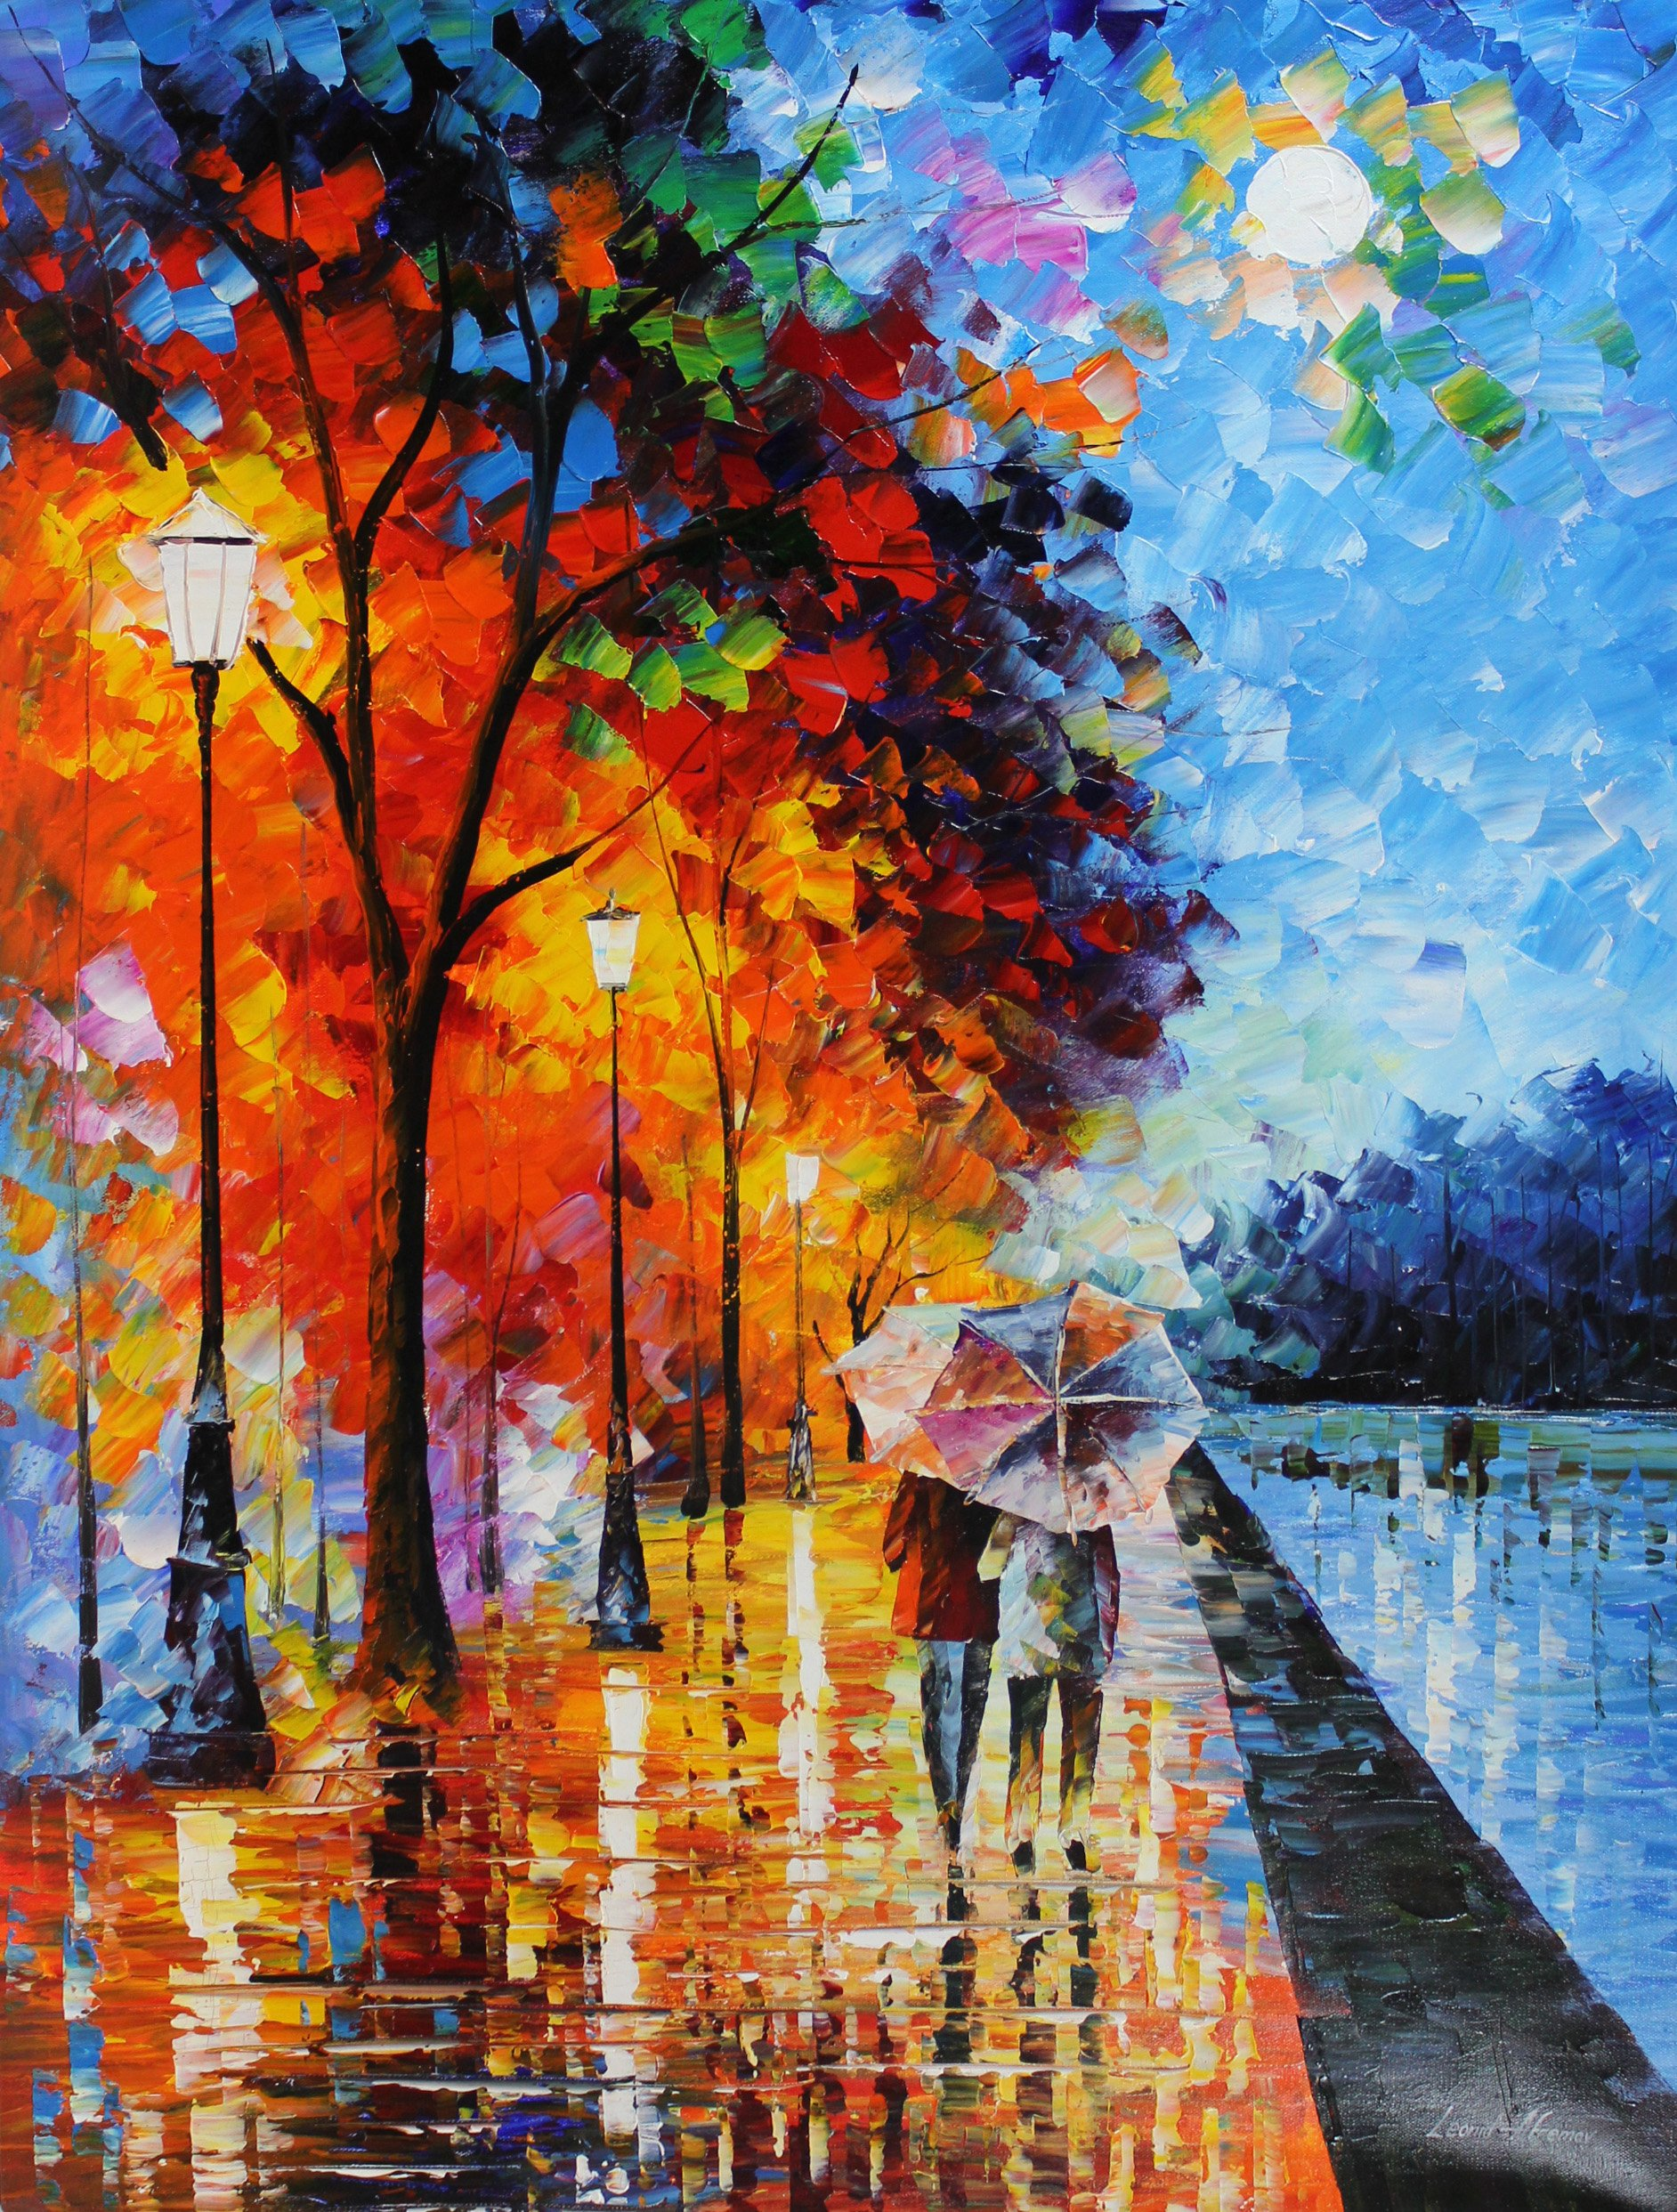 Love by the Lake is a LIMITED EDITION, MIXED MEDIA Oil Painting on Canvas by Leonid AFREMOV